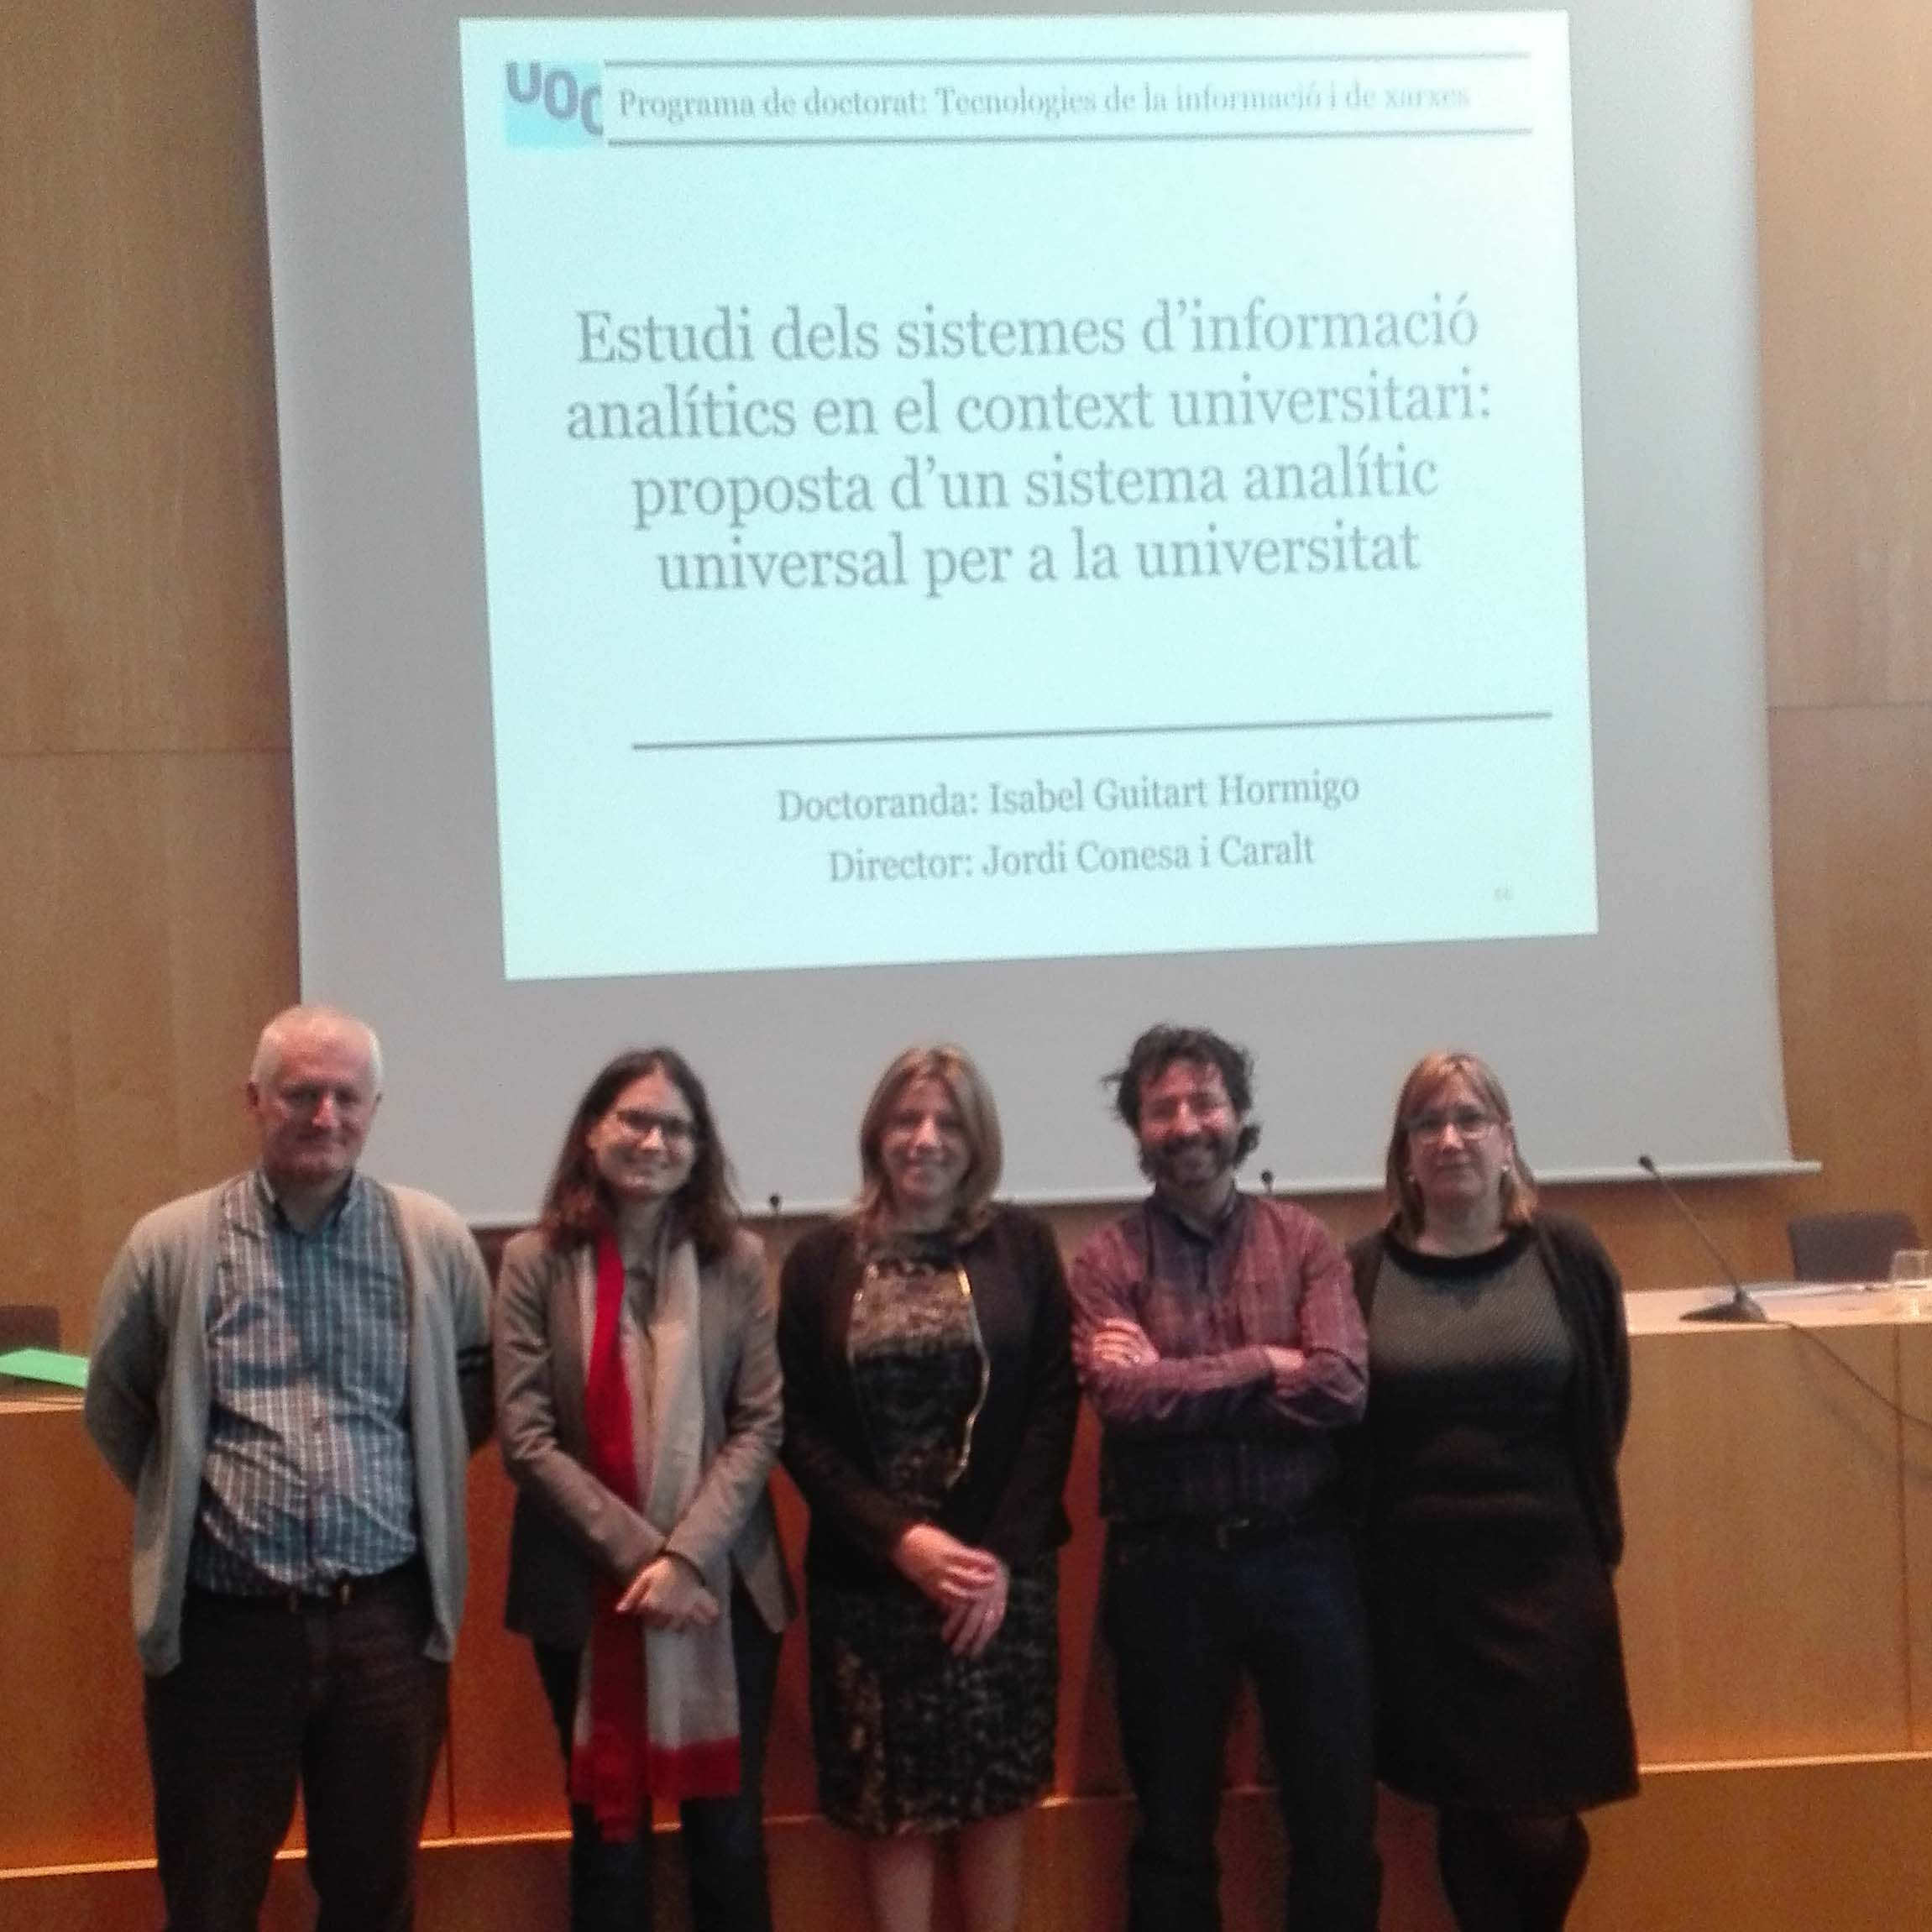 Doctoral Programme in Network and Information Technologies